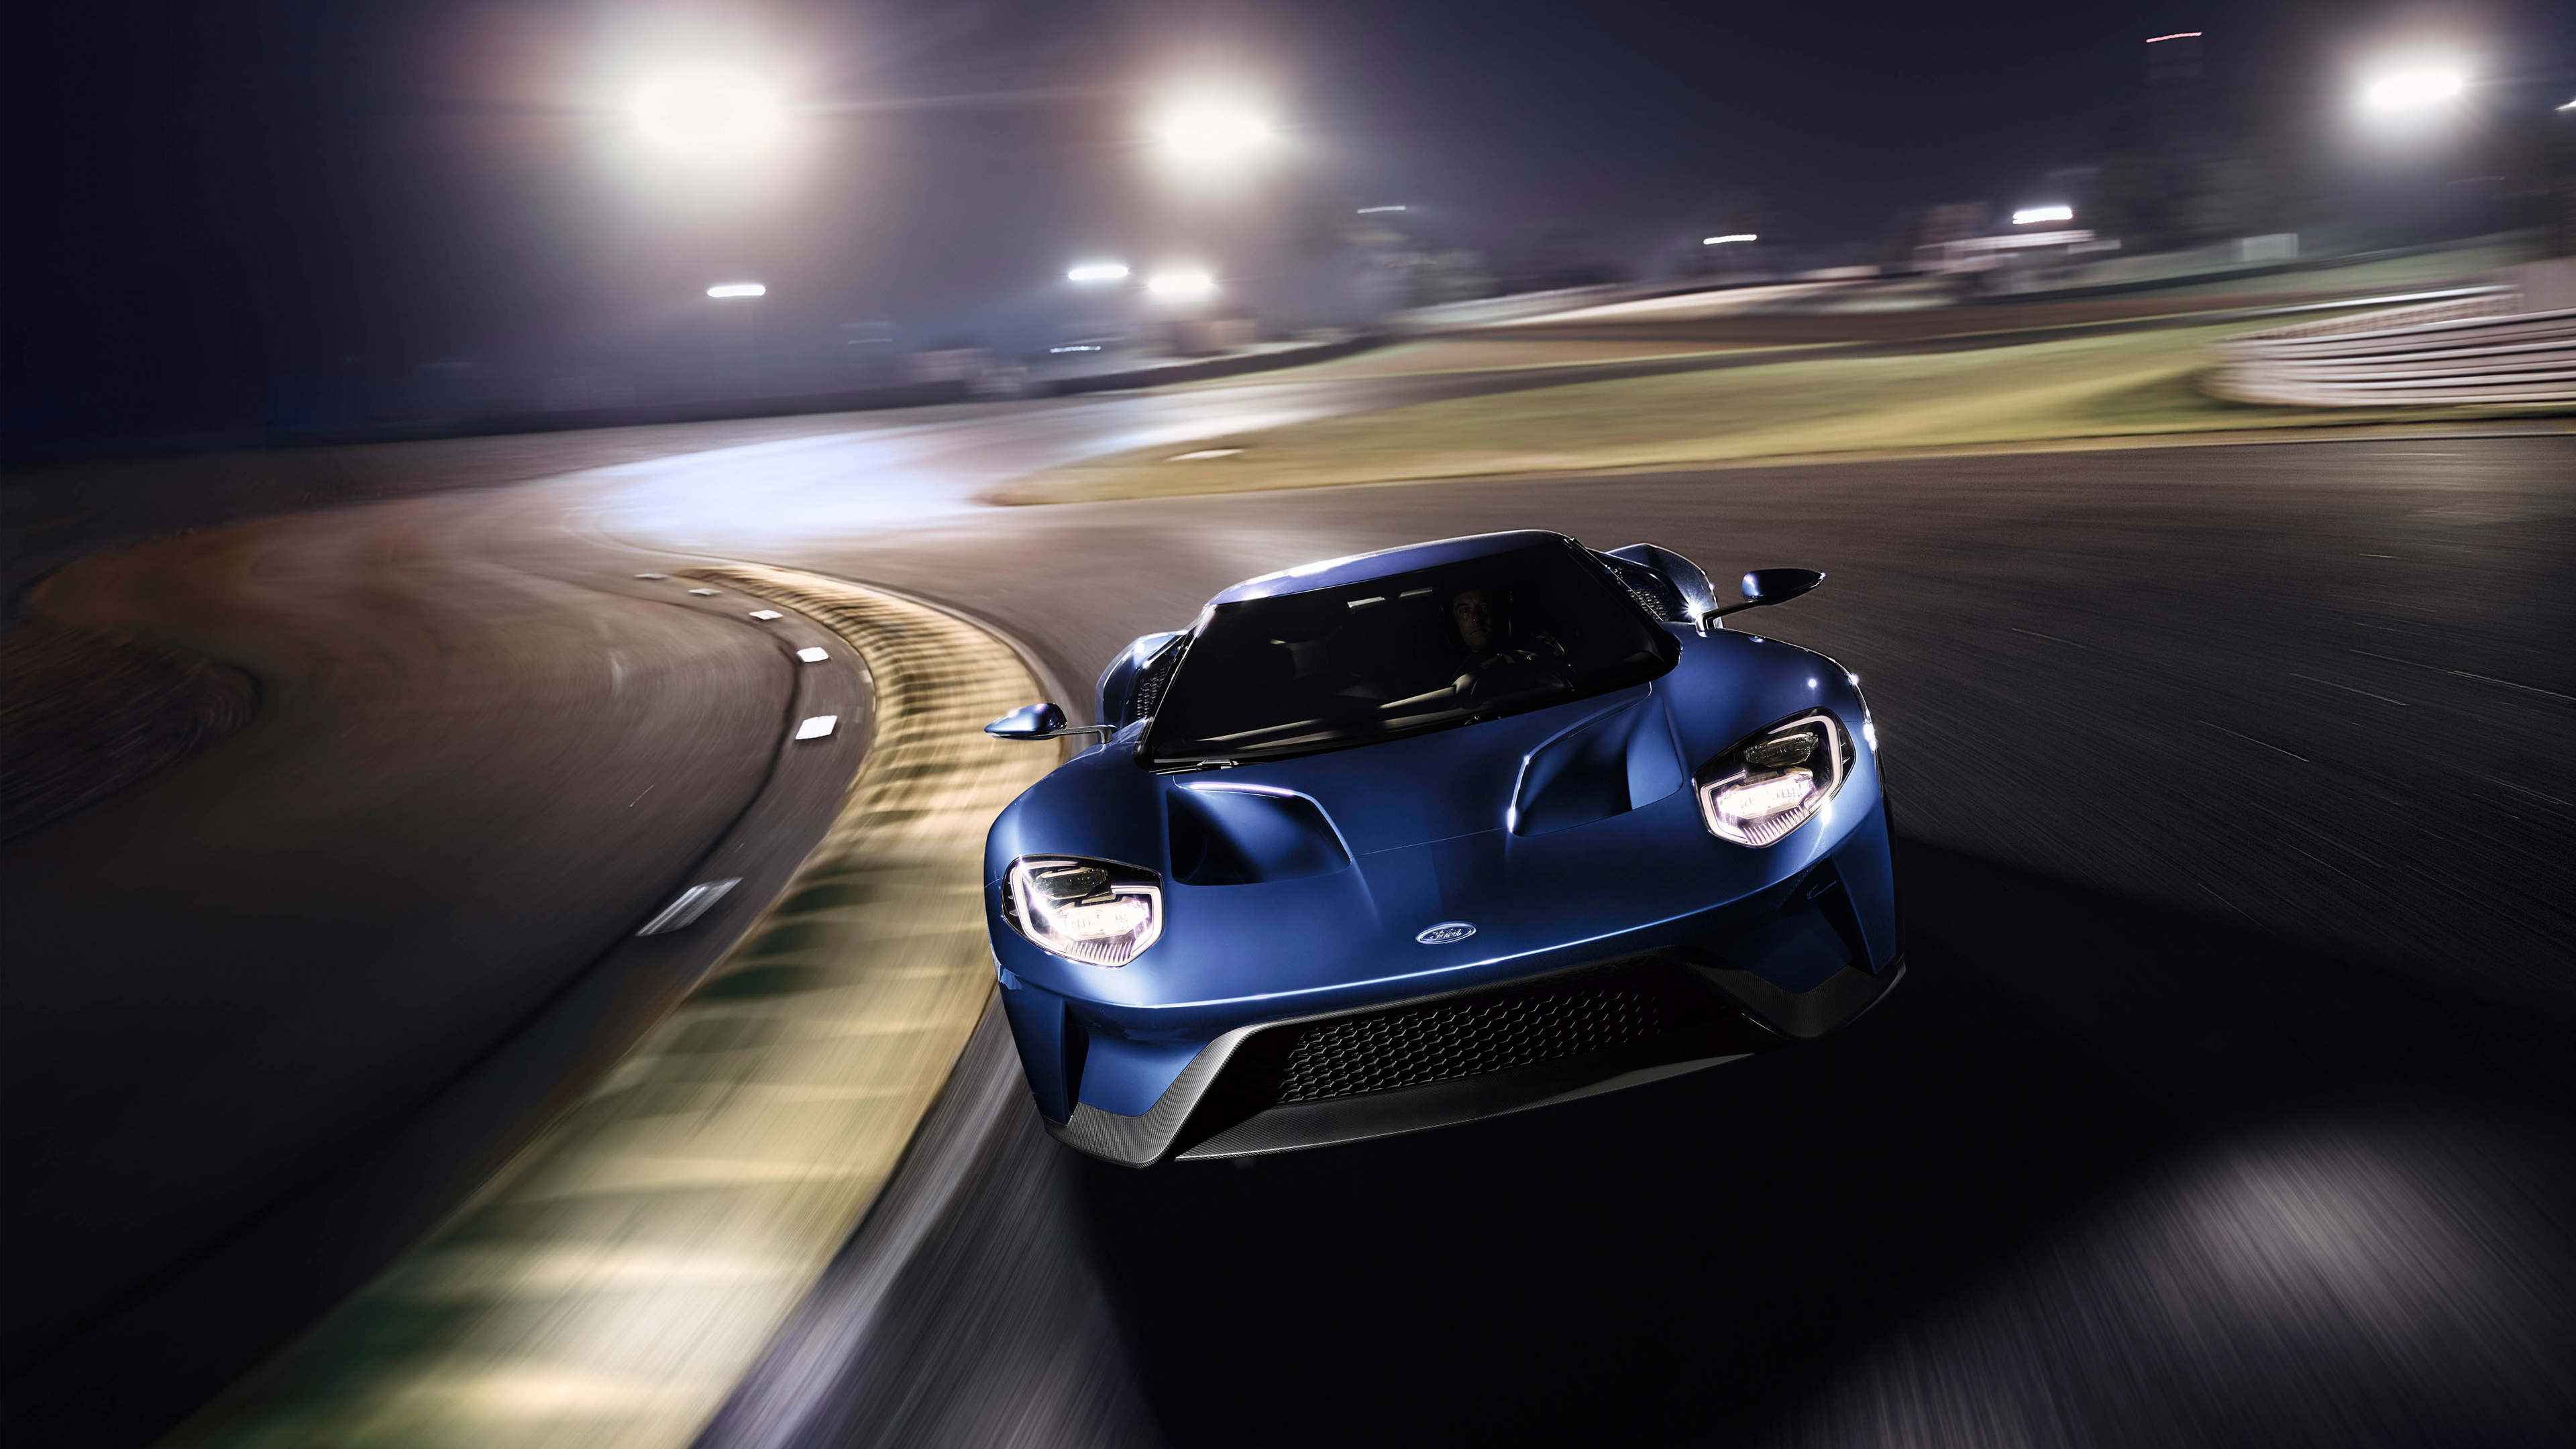 2017 Ford GT 4K Wallpaper HD Car Wallpapers ID #6696